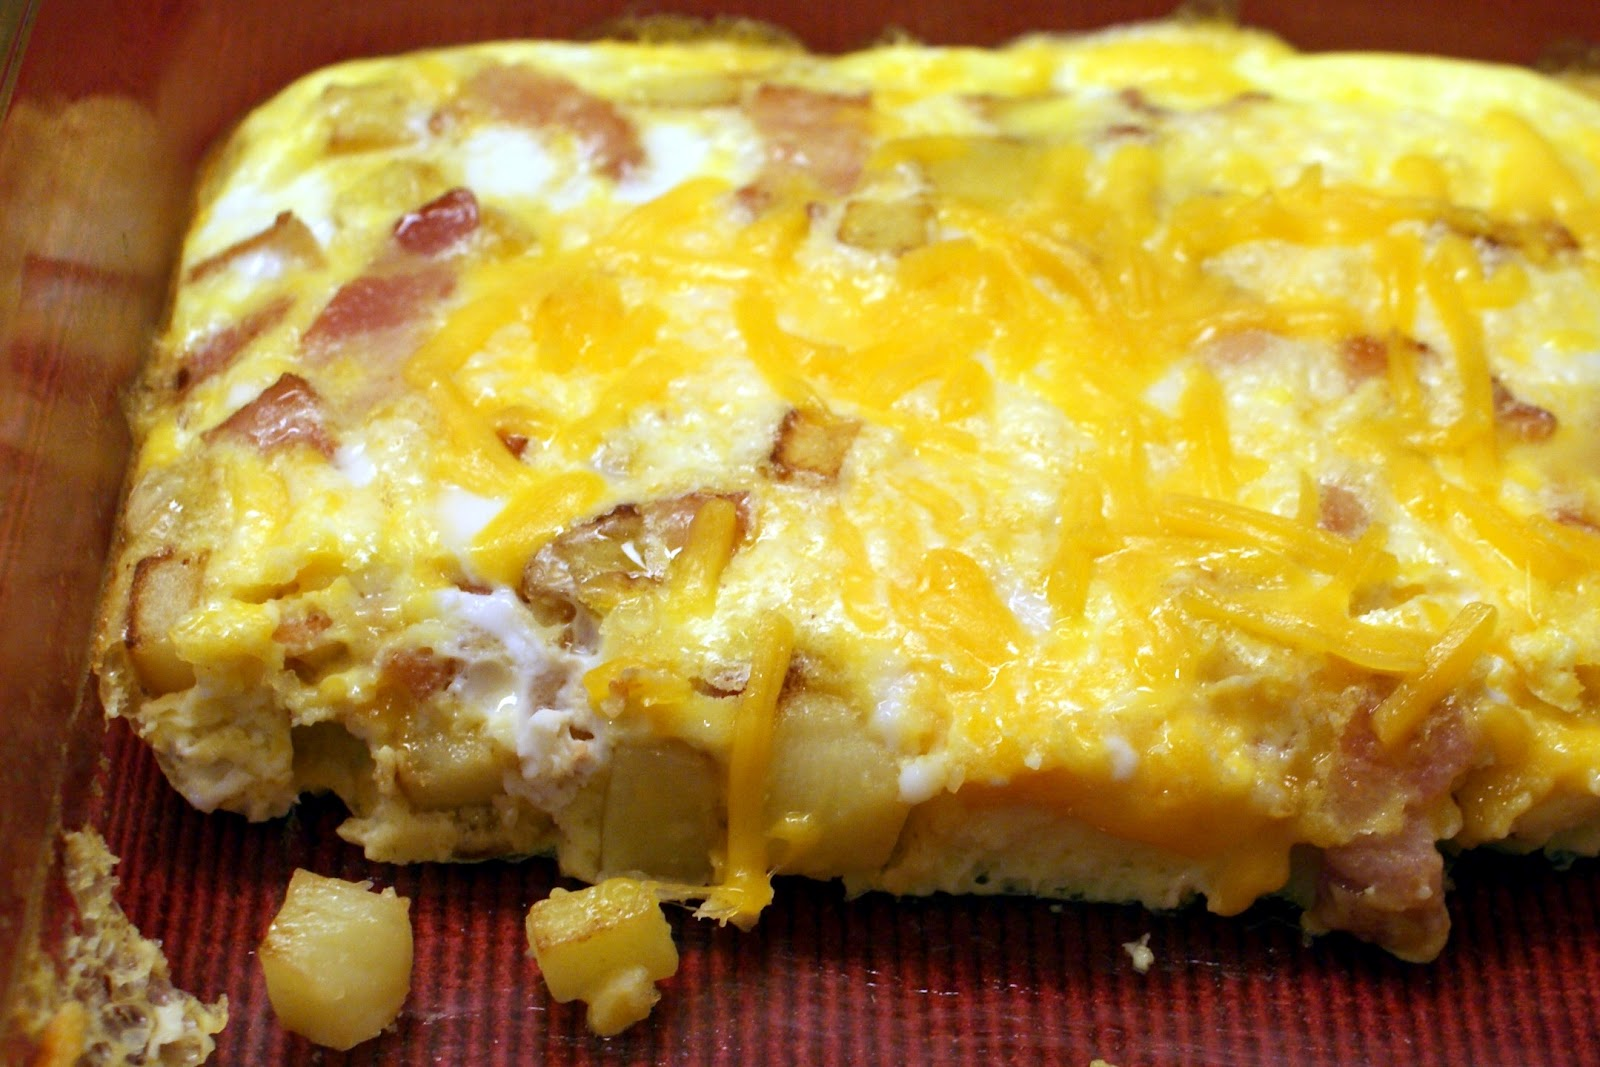 The Baker's Mann: Potato, Bacon and Cheese Omelet